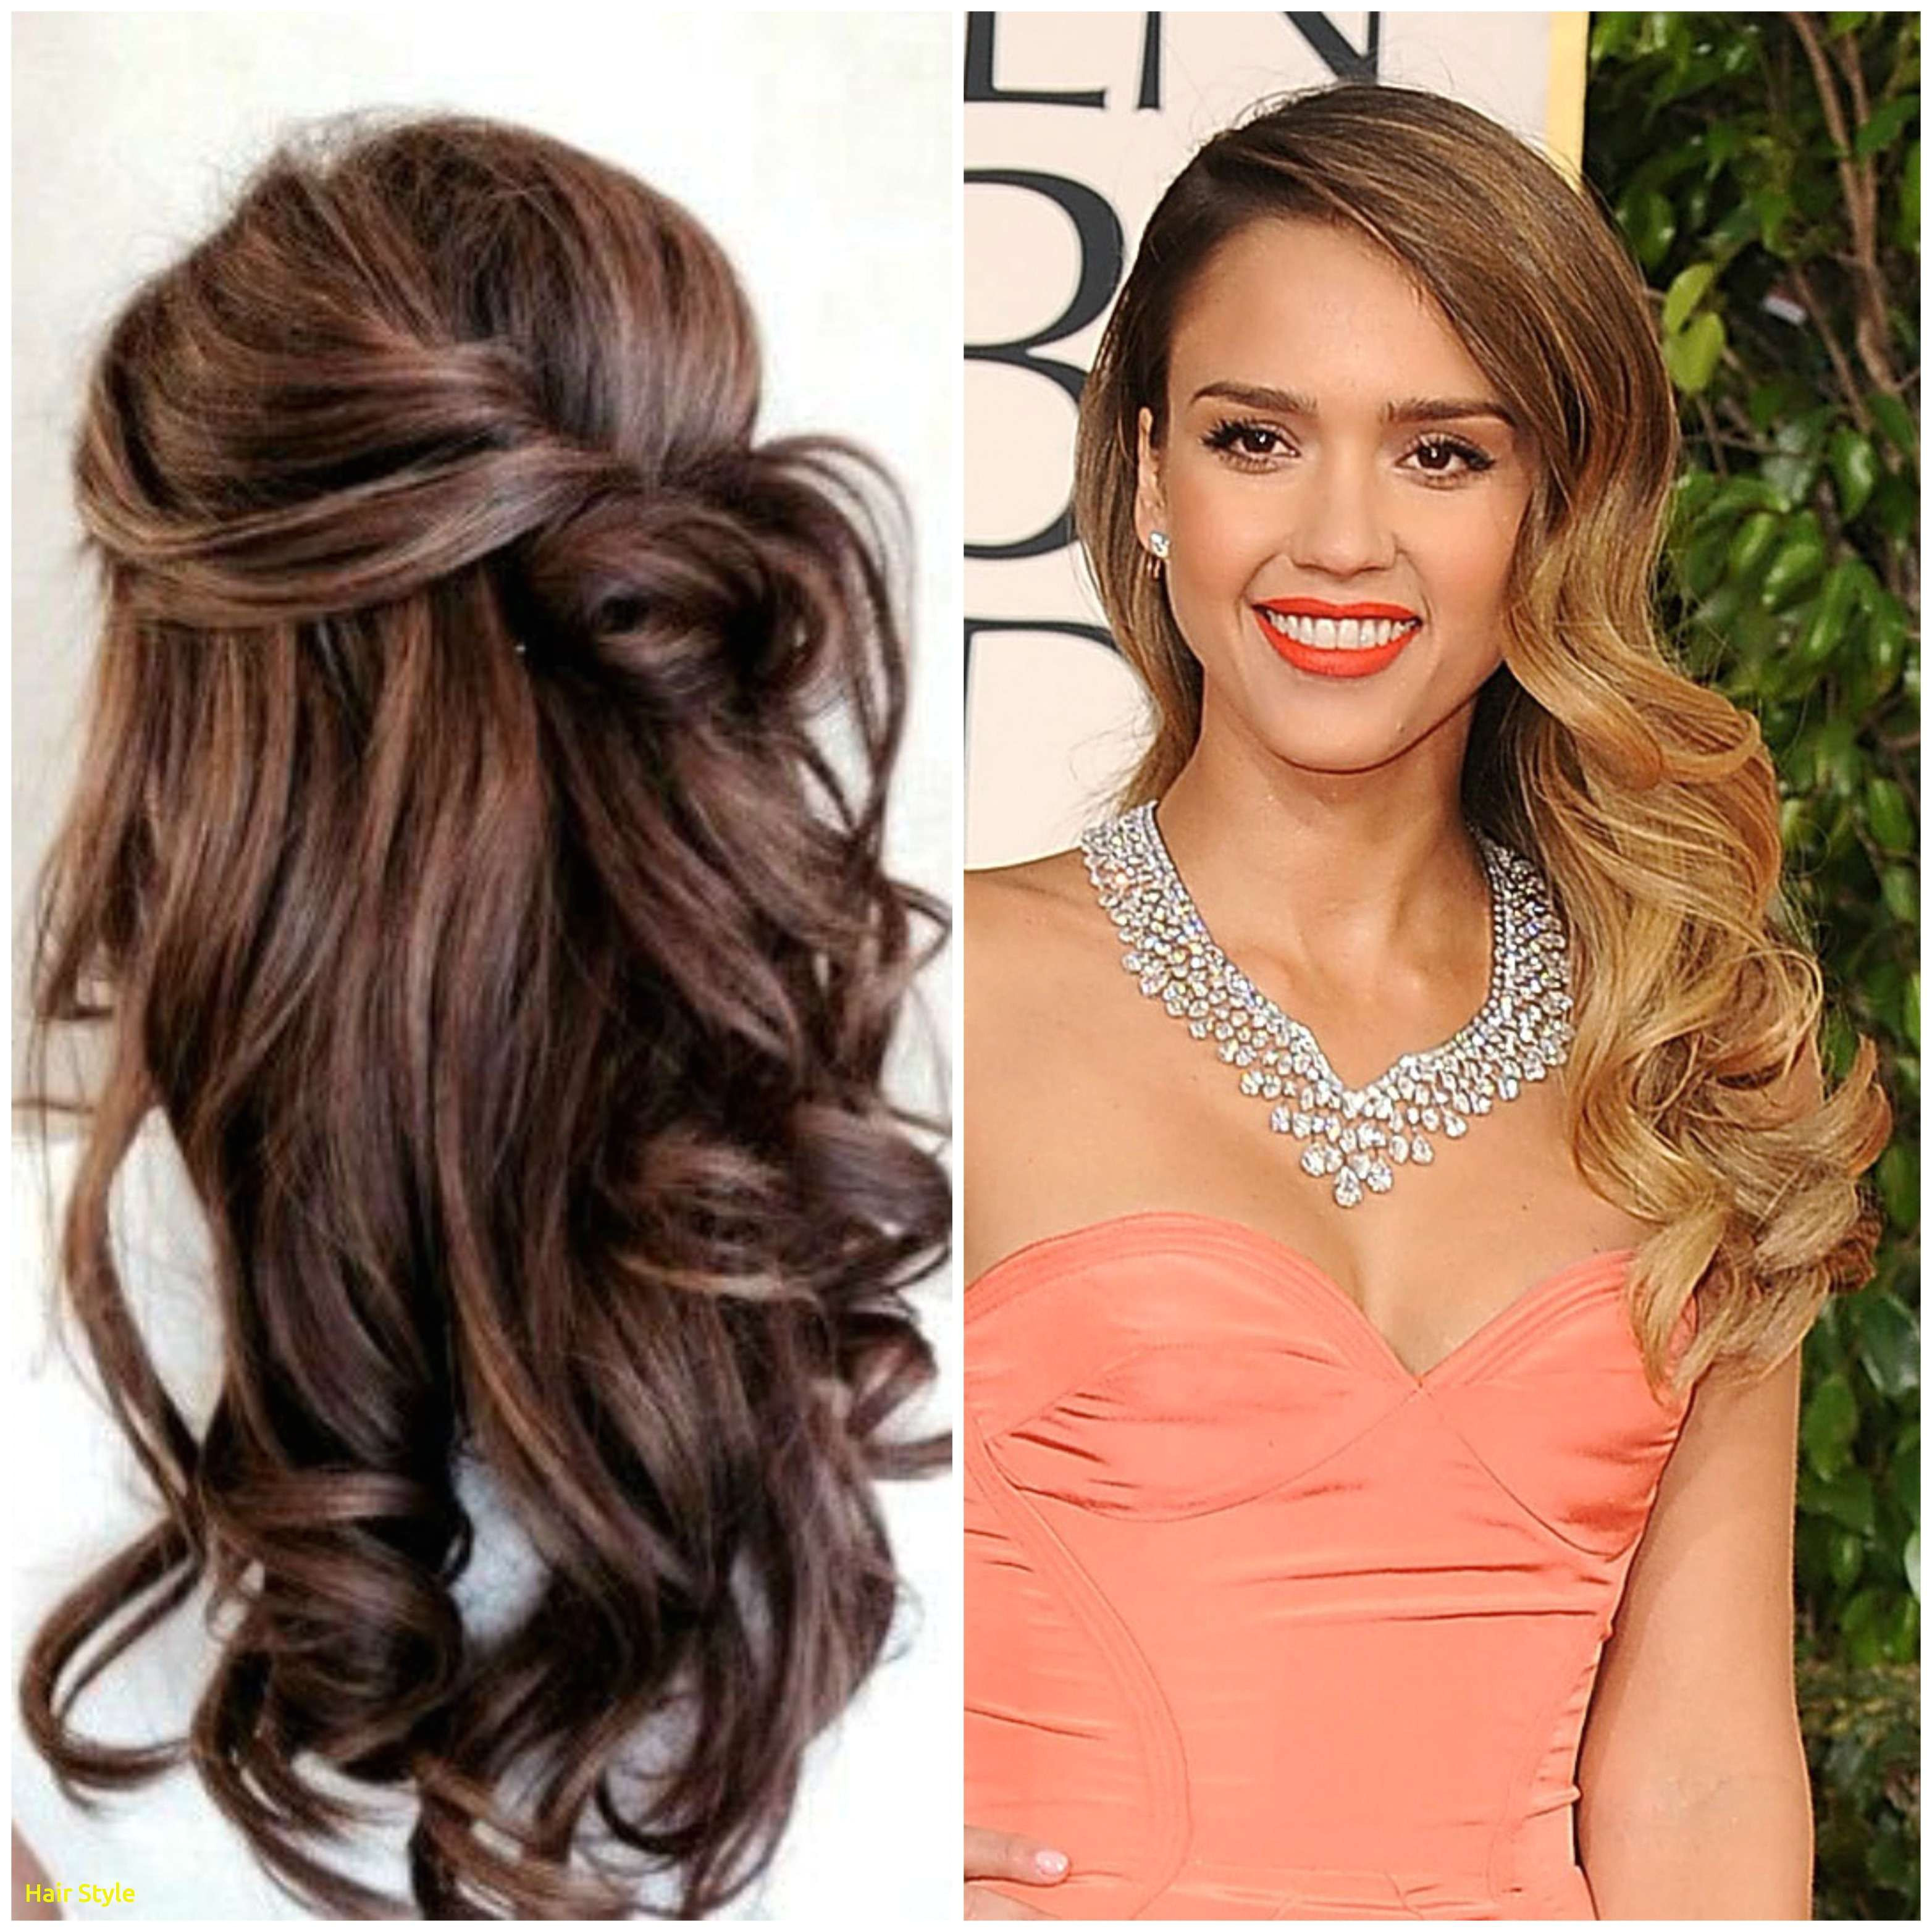 hairstyles for long hair 2015 luxury i pinimg 1200x 0d 60 8a furthermore human hair color